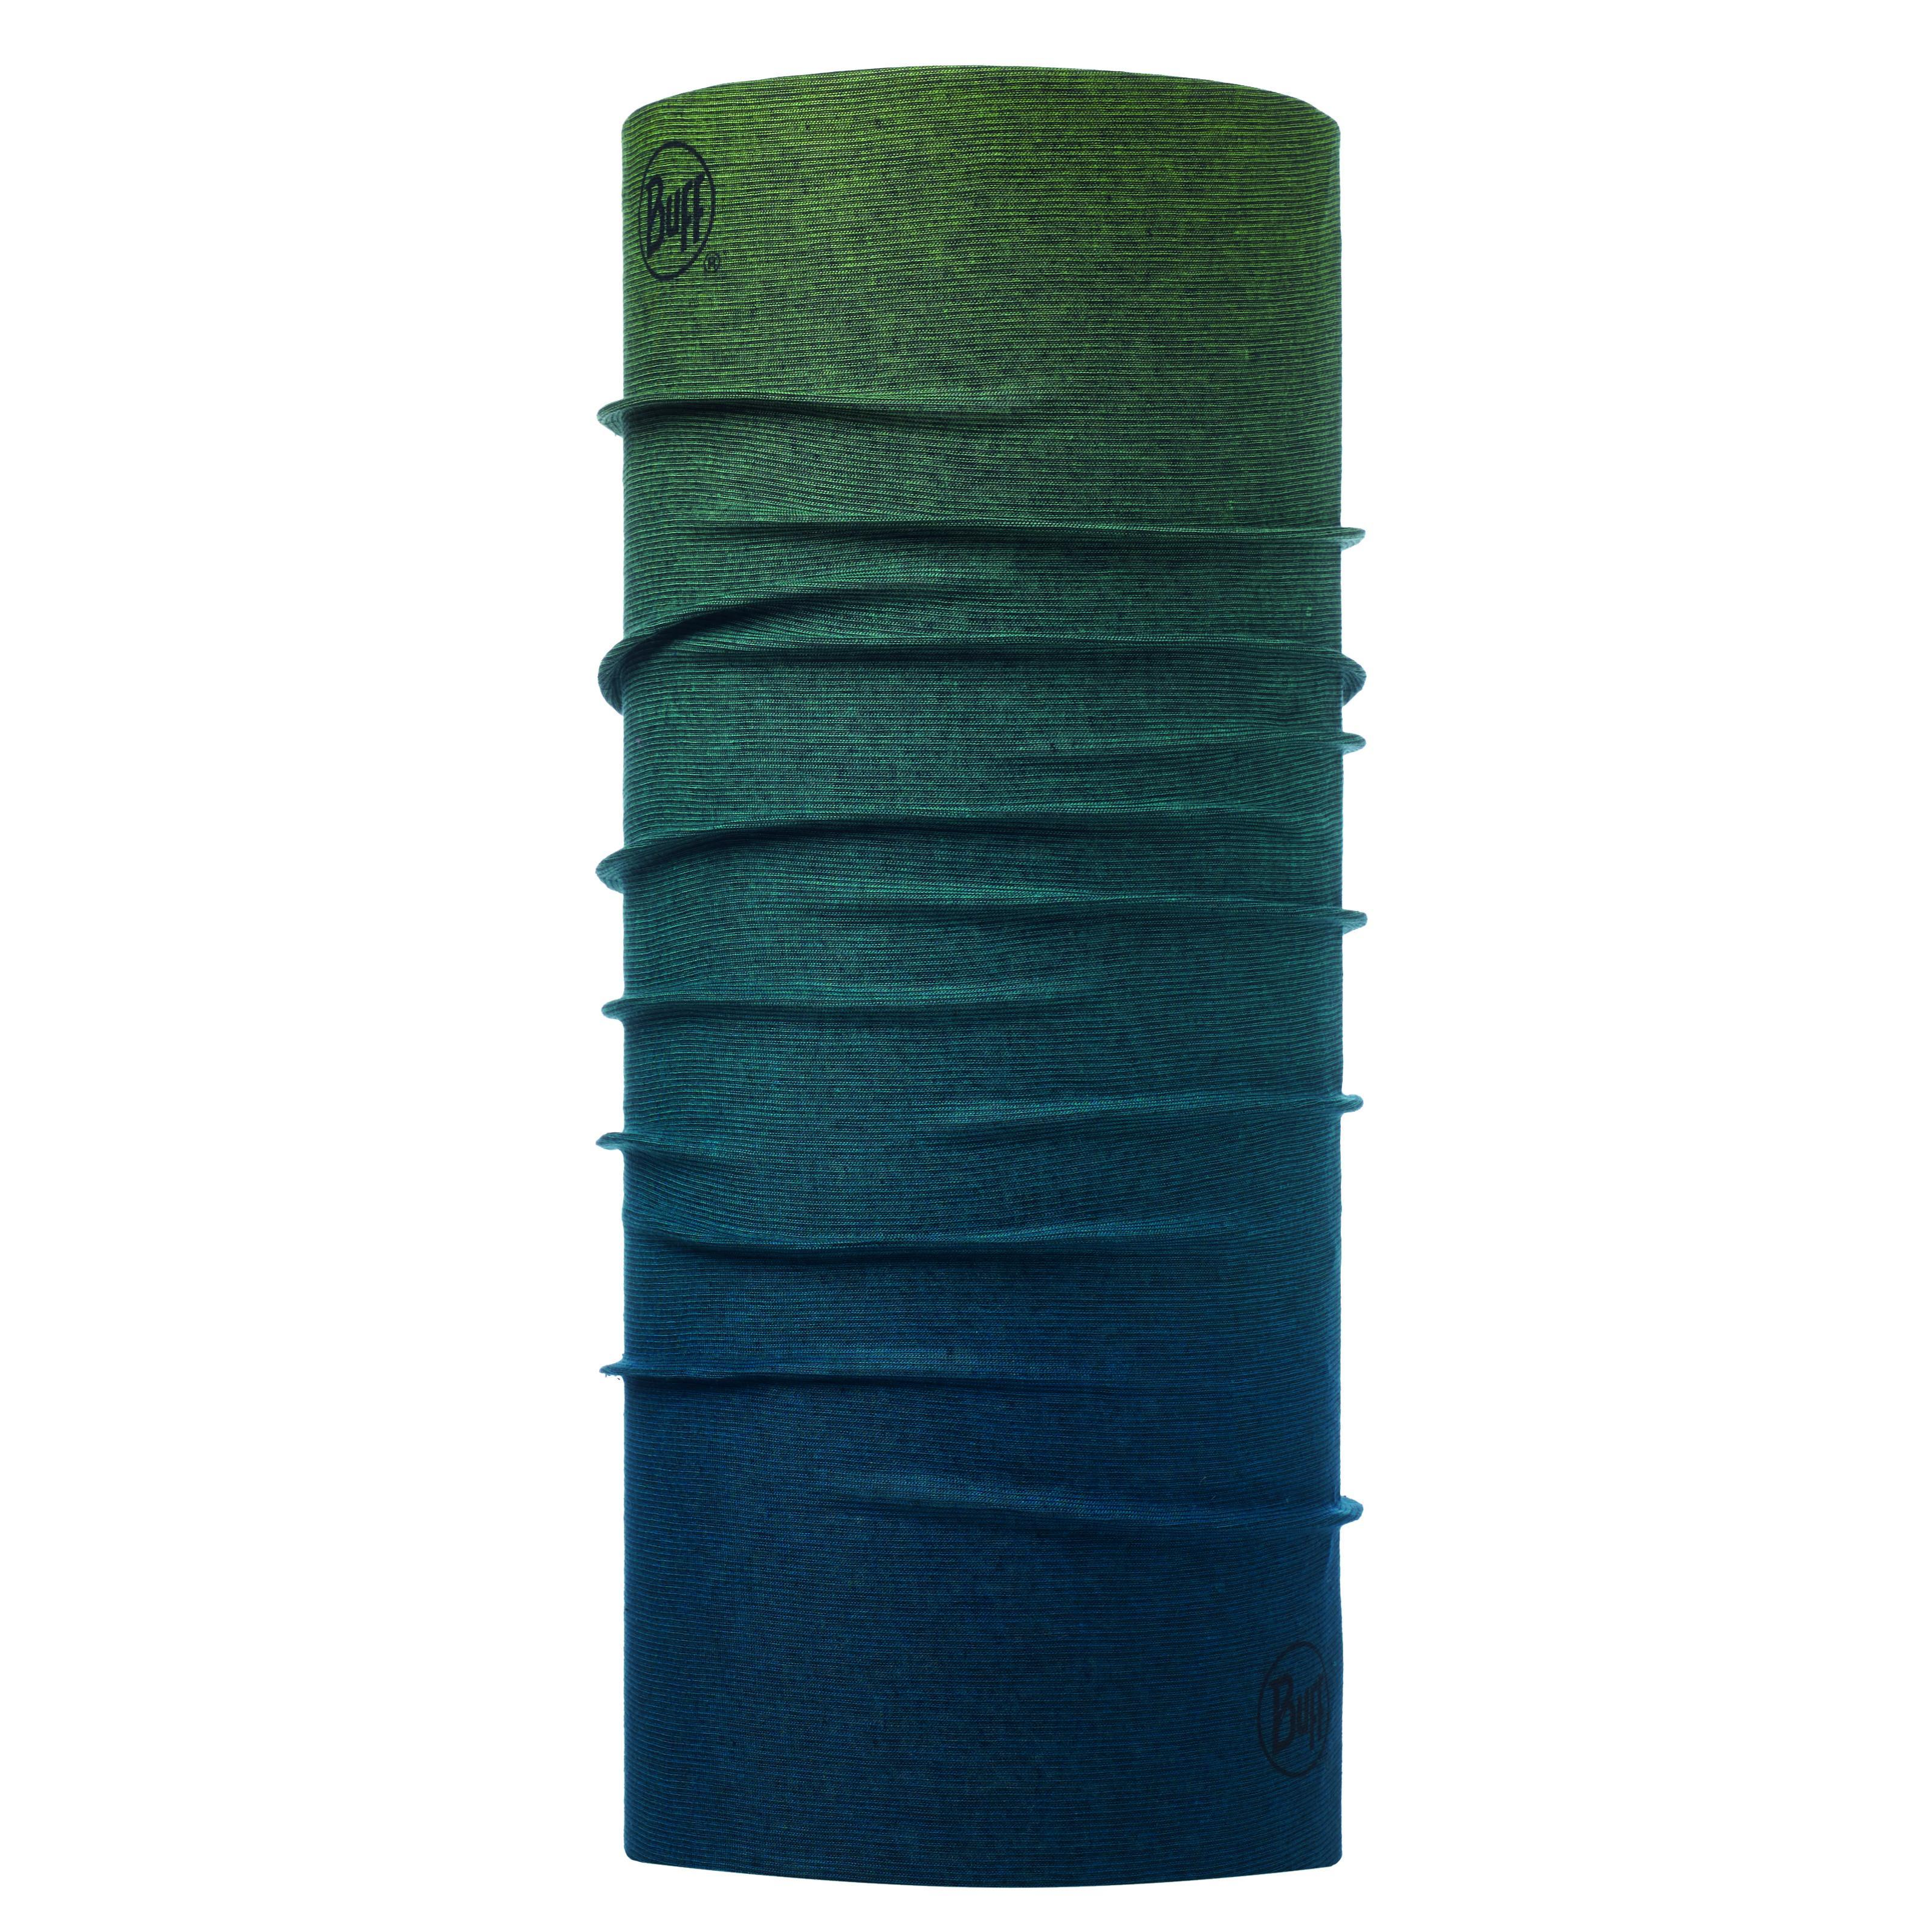 Купить Бандана BUFF ORIGINAL NOD DEEP TEAL Банданы и шарфы Buff ® 1307885